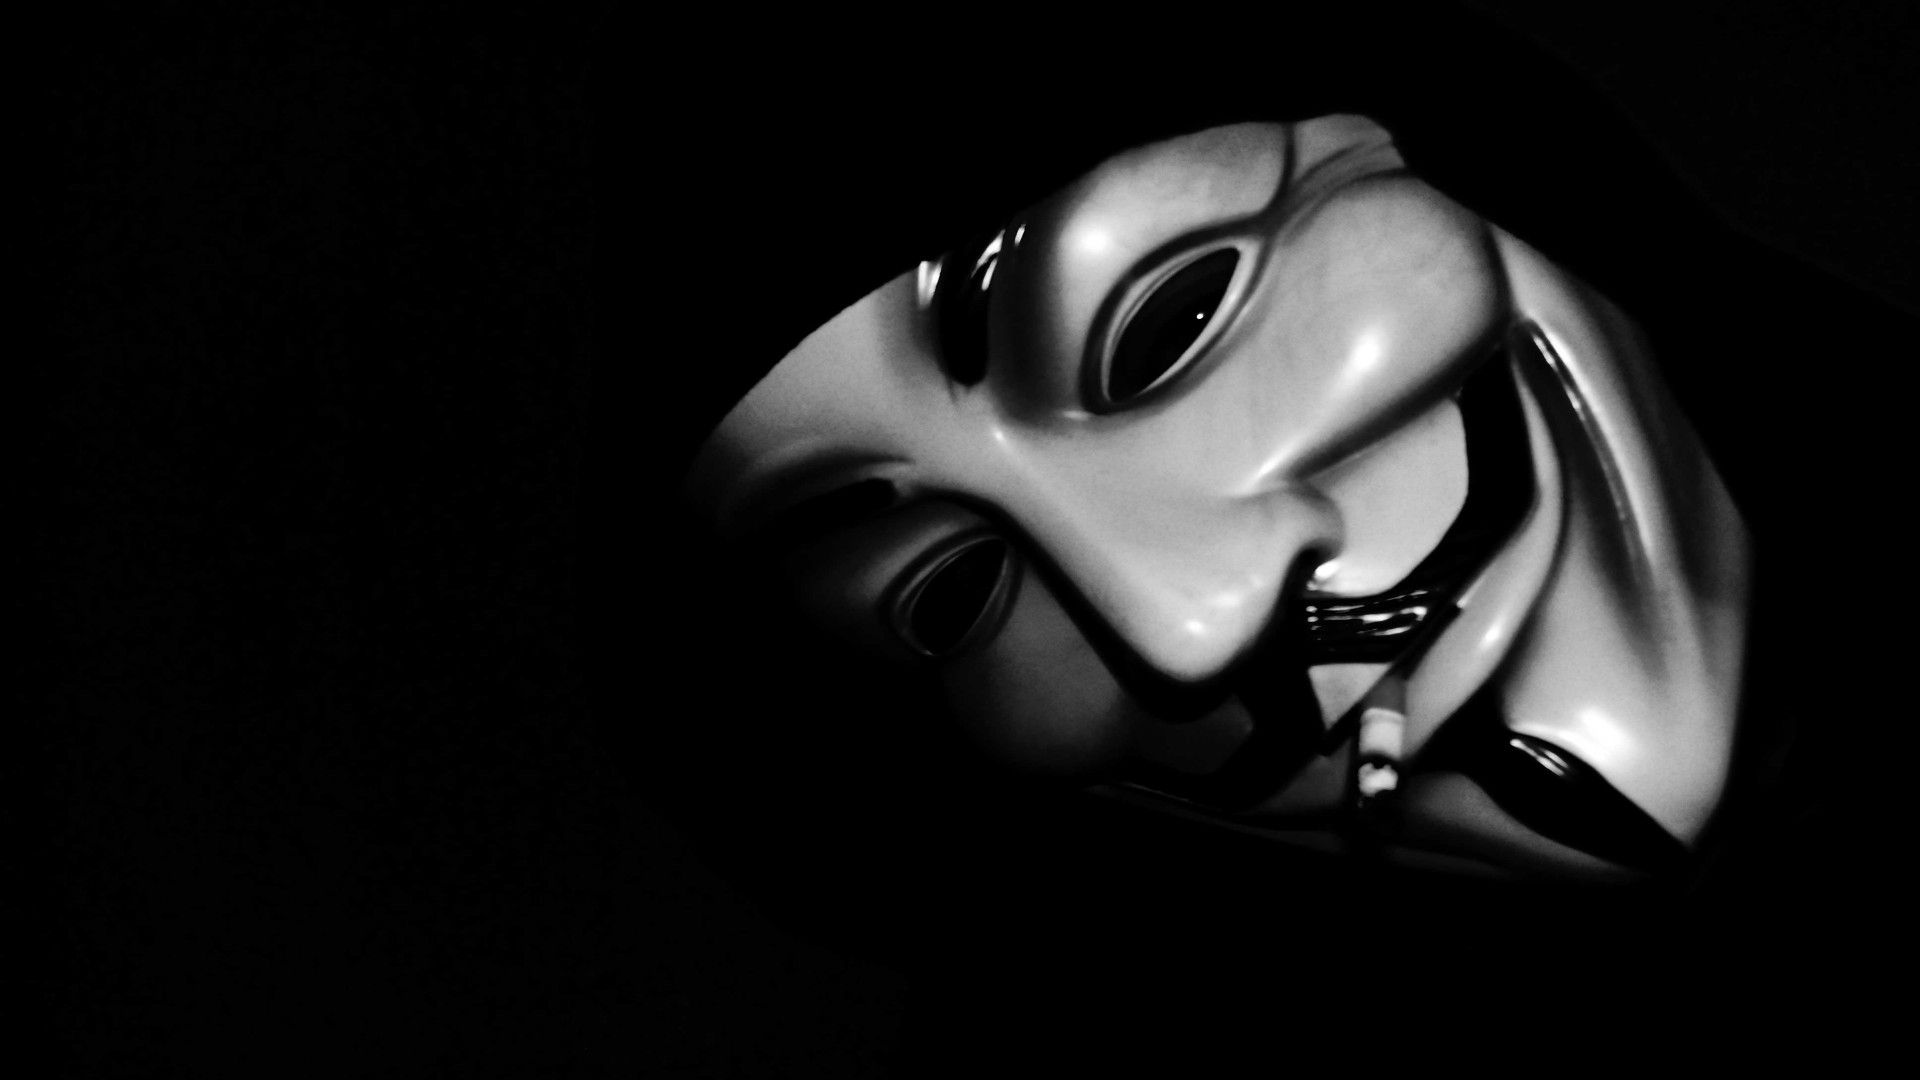 Free Download V Vendetta Wallpapers 86 1920x1080 For Your